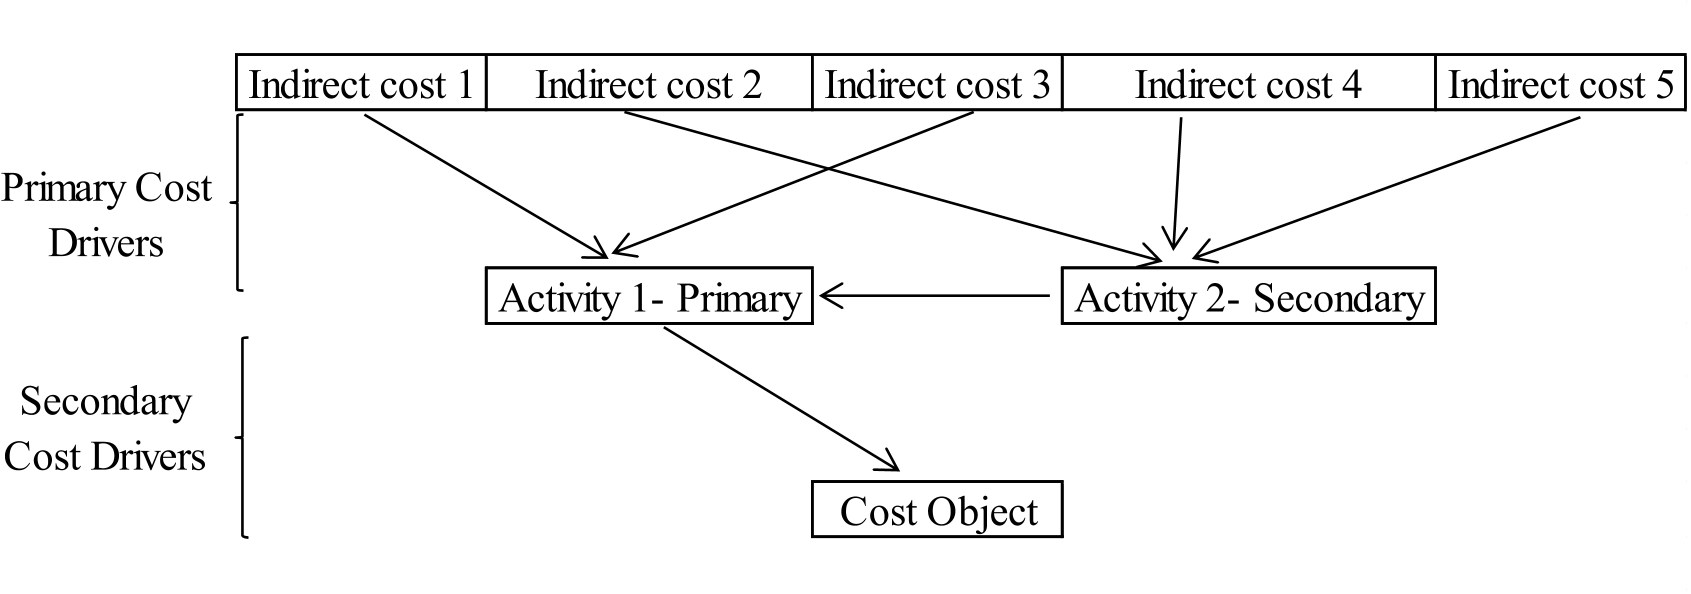 Pdf Designing An Activity Based Costing System For A Specialty Retail Store Scinapse